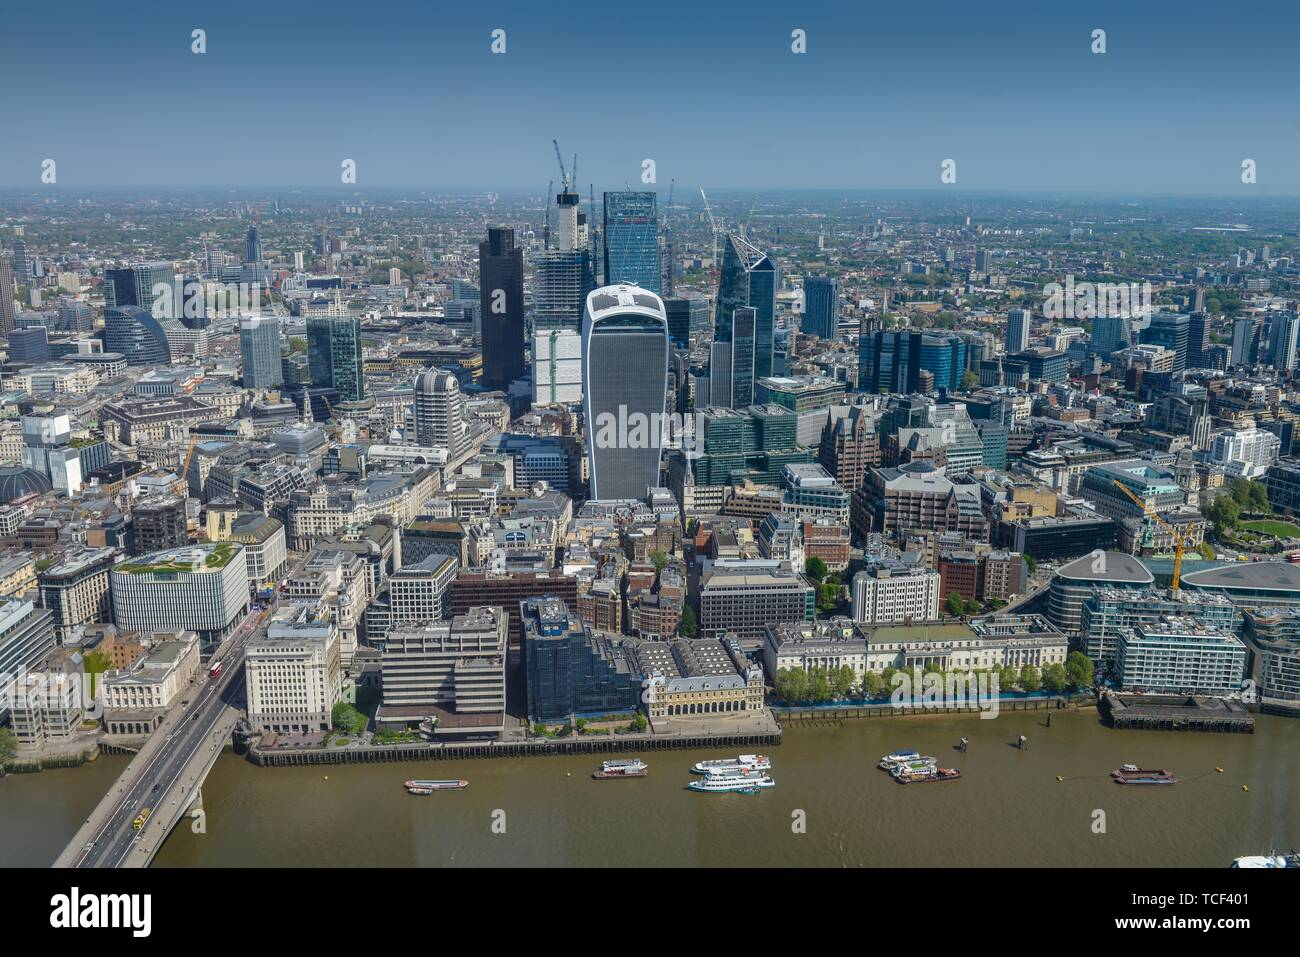 City view, Thames with Financial District, The City of London, London, England, Great Britain - Stock Image